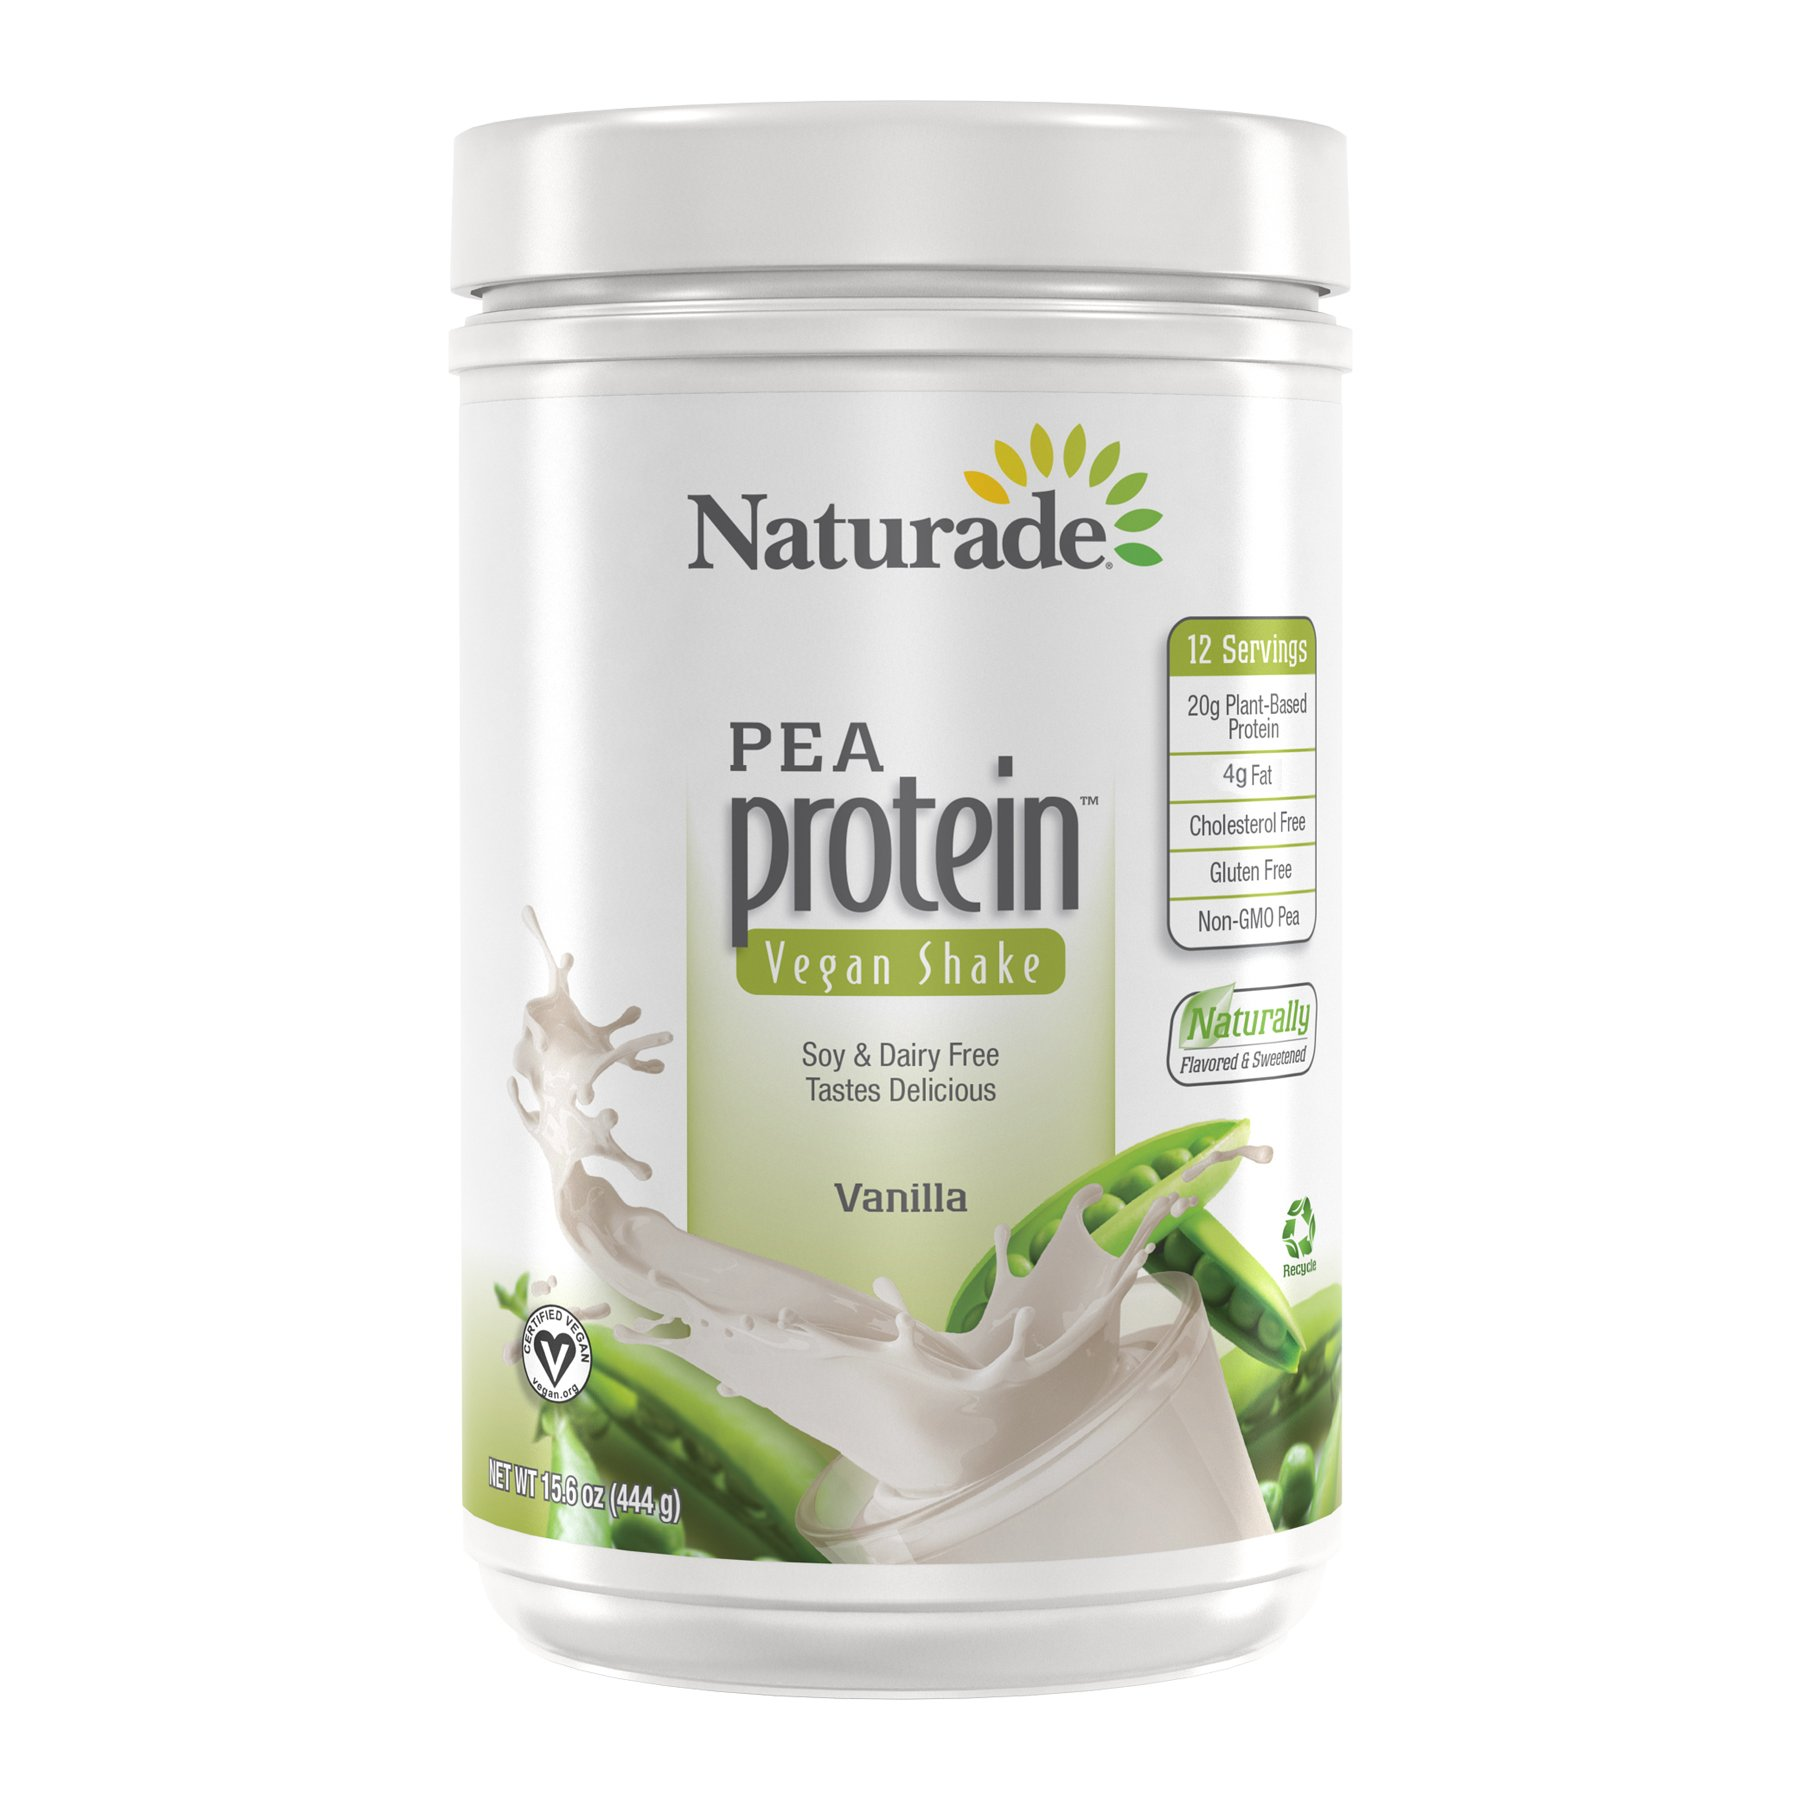 Naturade Plant Based Vegan Pea Protein - Vanilla - 15.66 oz by Naturade